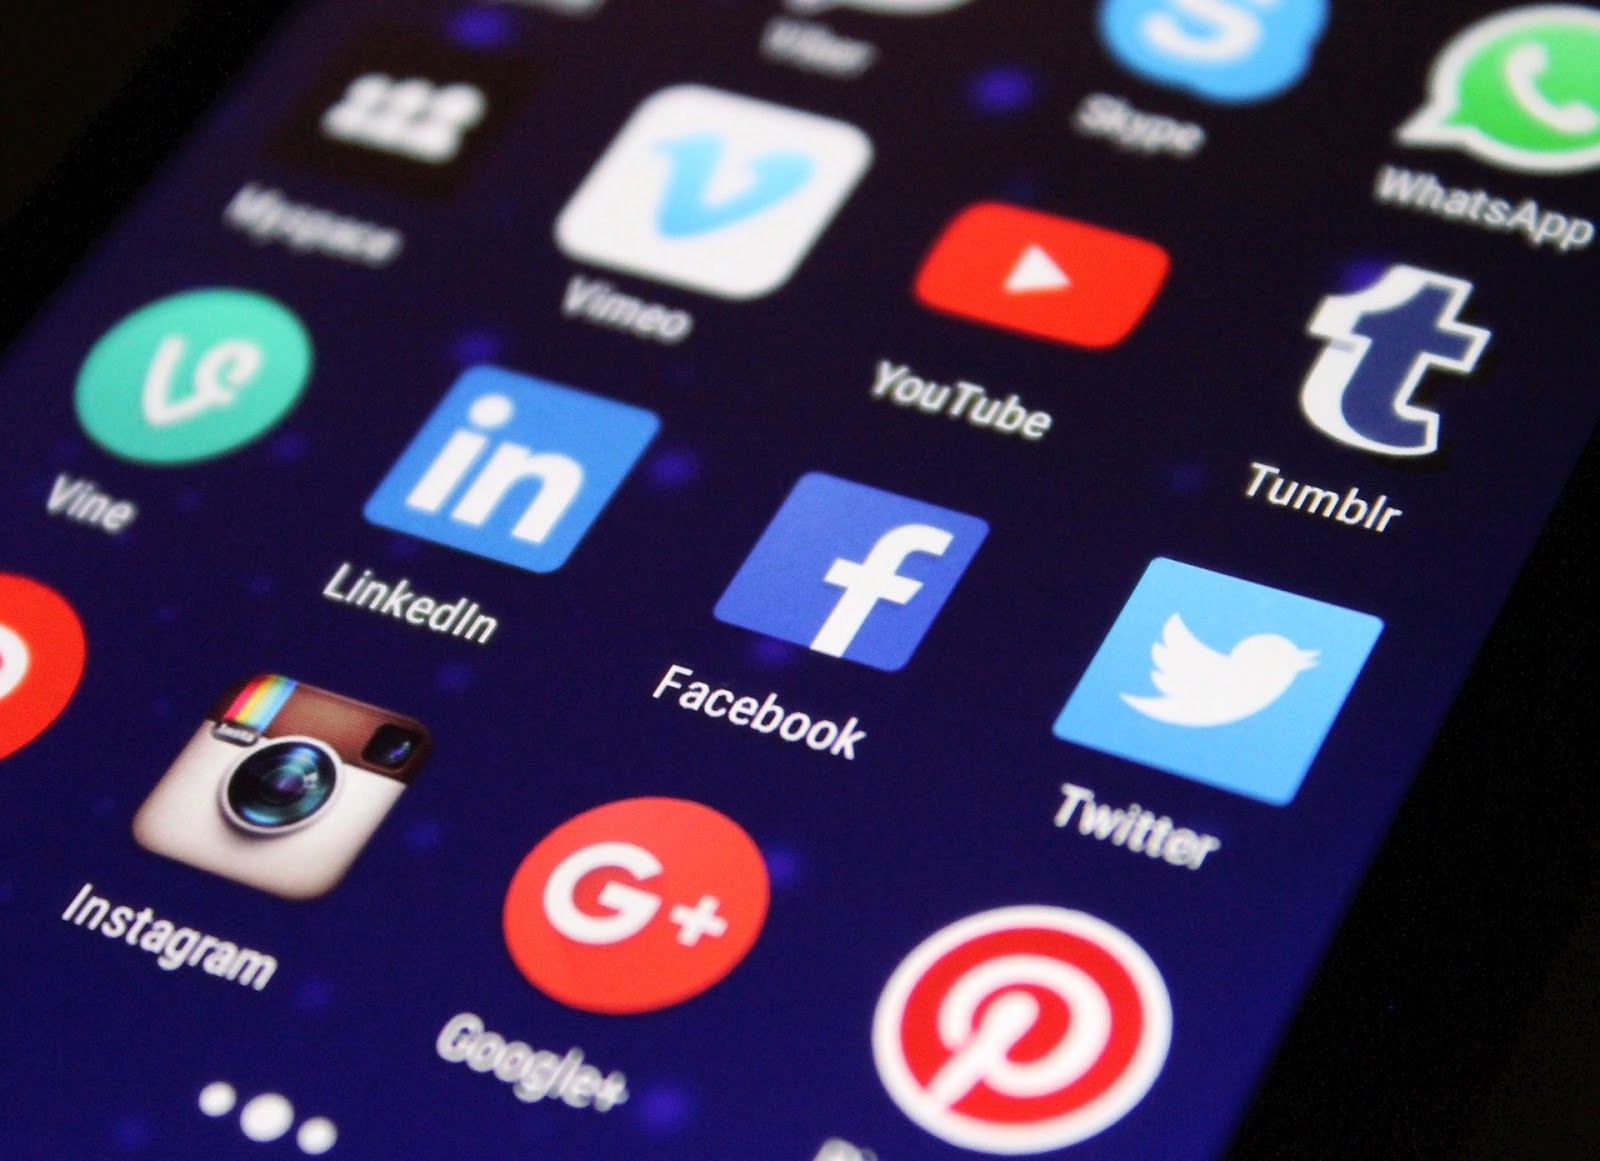 b2b web marketing on social media is the hot topic right now